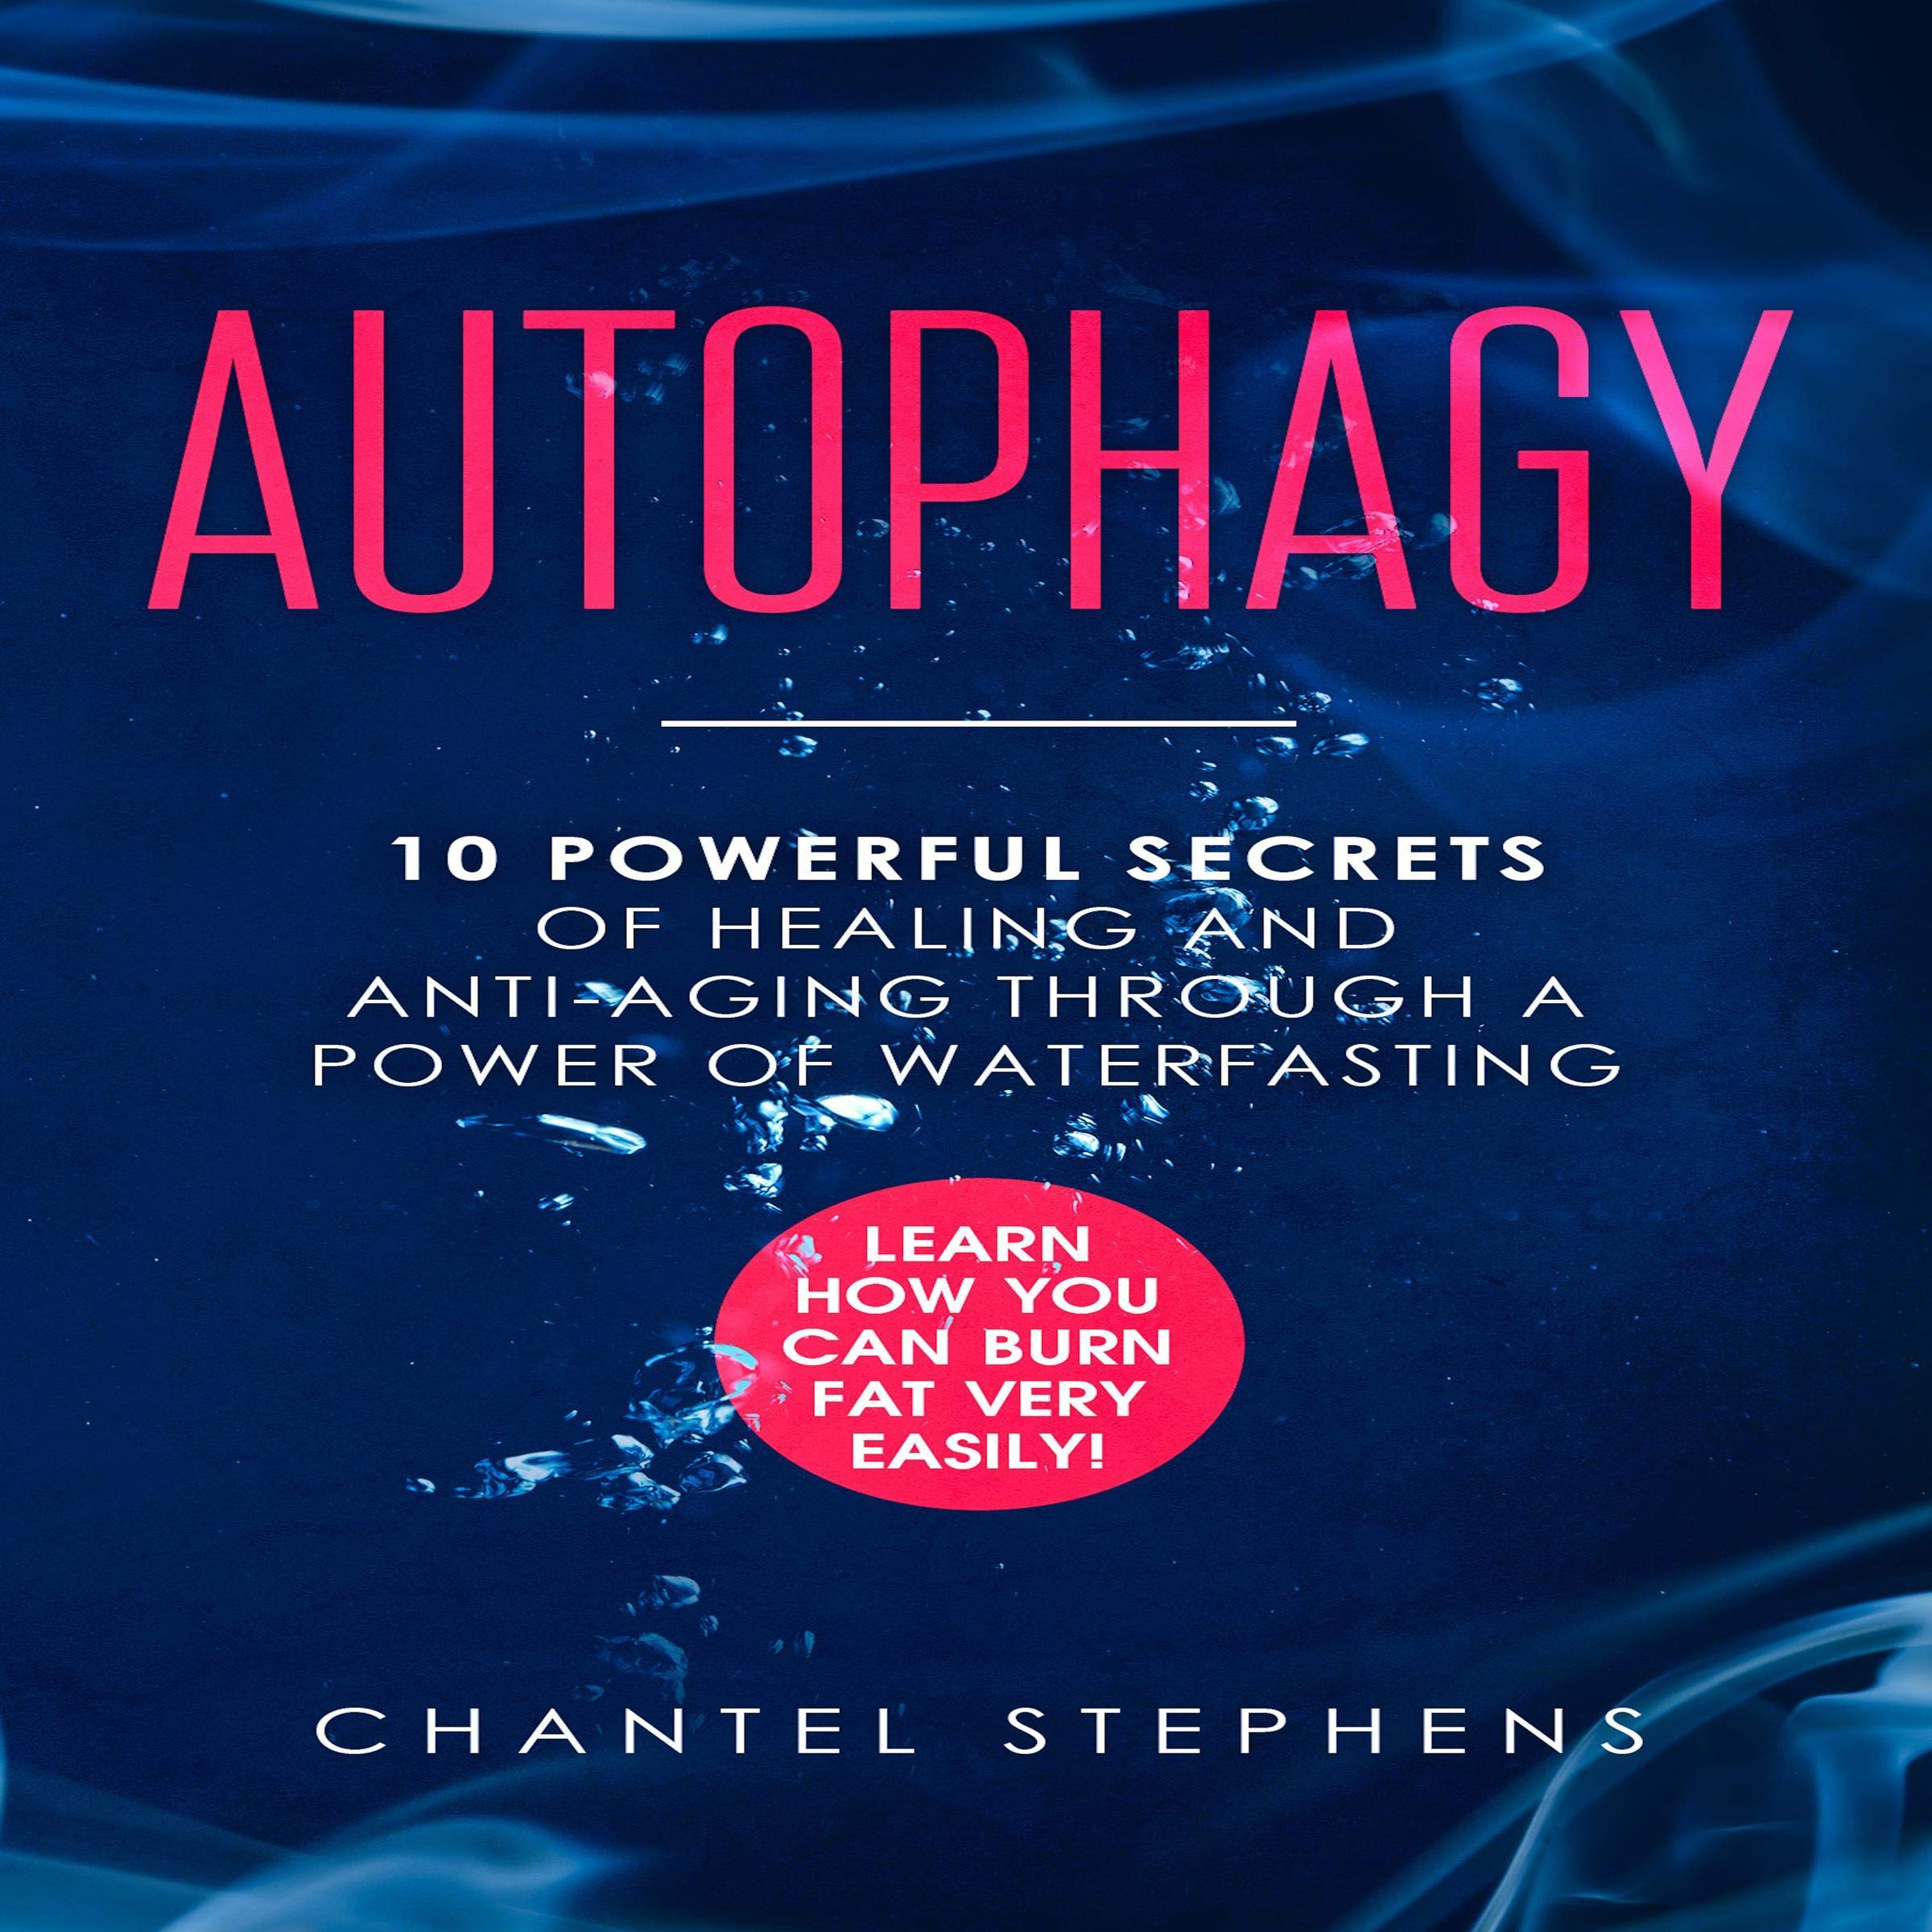 Autophagy  10 Powerful Secrets Of Healing And Anti Aging Through A Power Of Waterfasting  Learn How You Can Burn Fat Very Easily